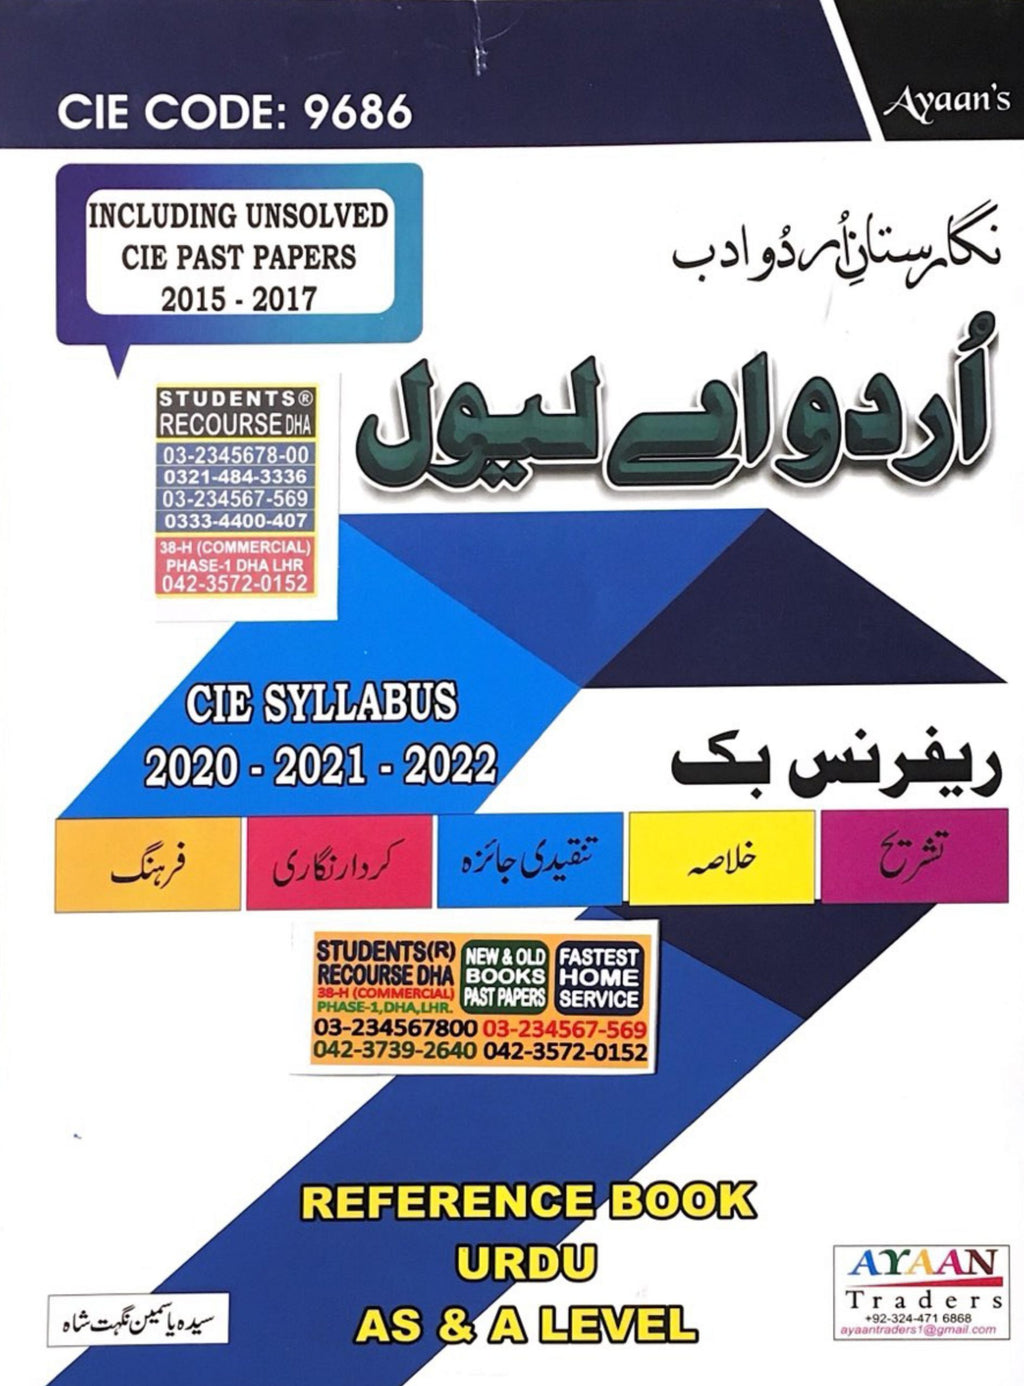 Cambridge AS/A-Level Nigaristan Urdu (8686/9686) Reference Book by Syeda Yasmin Nighat Shah